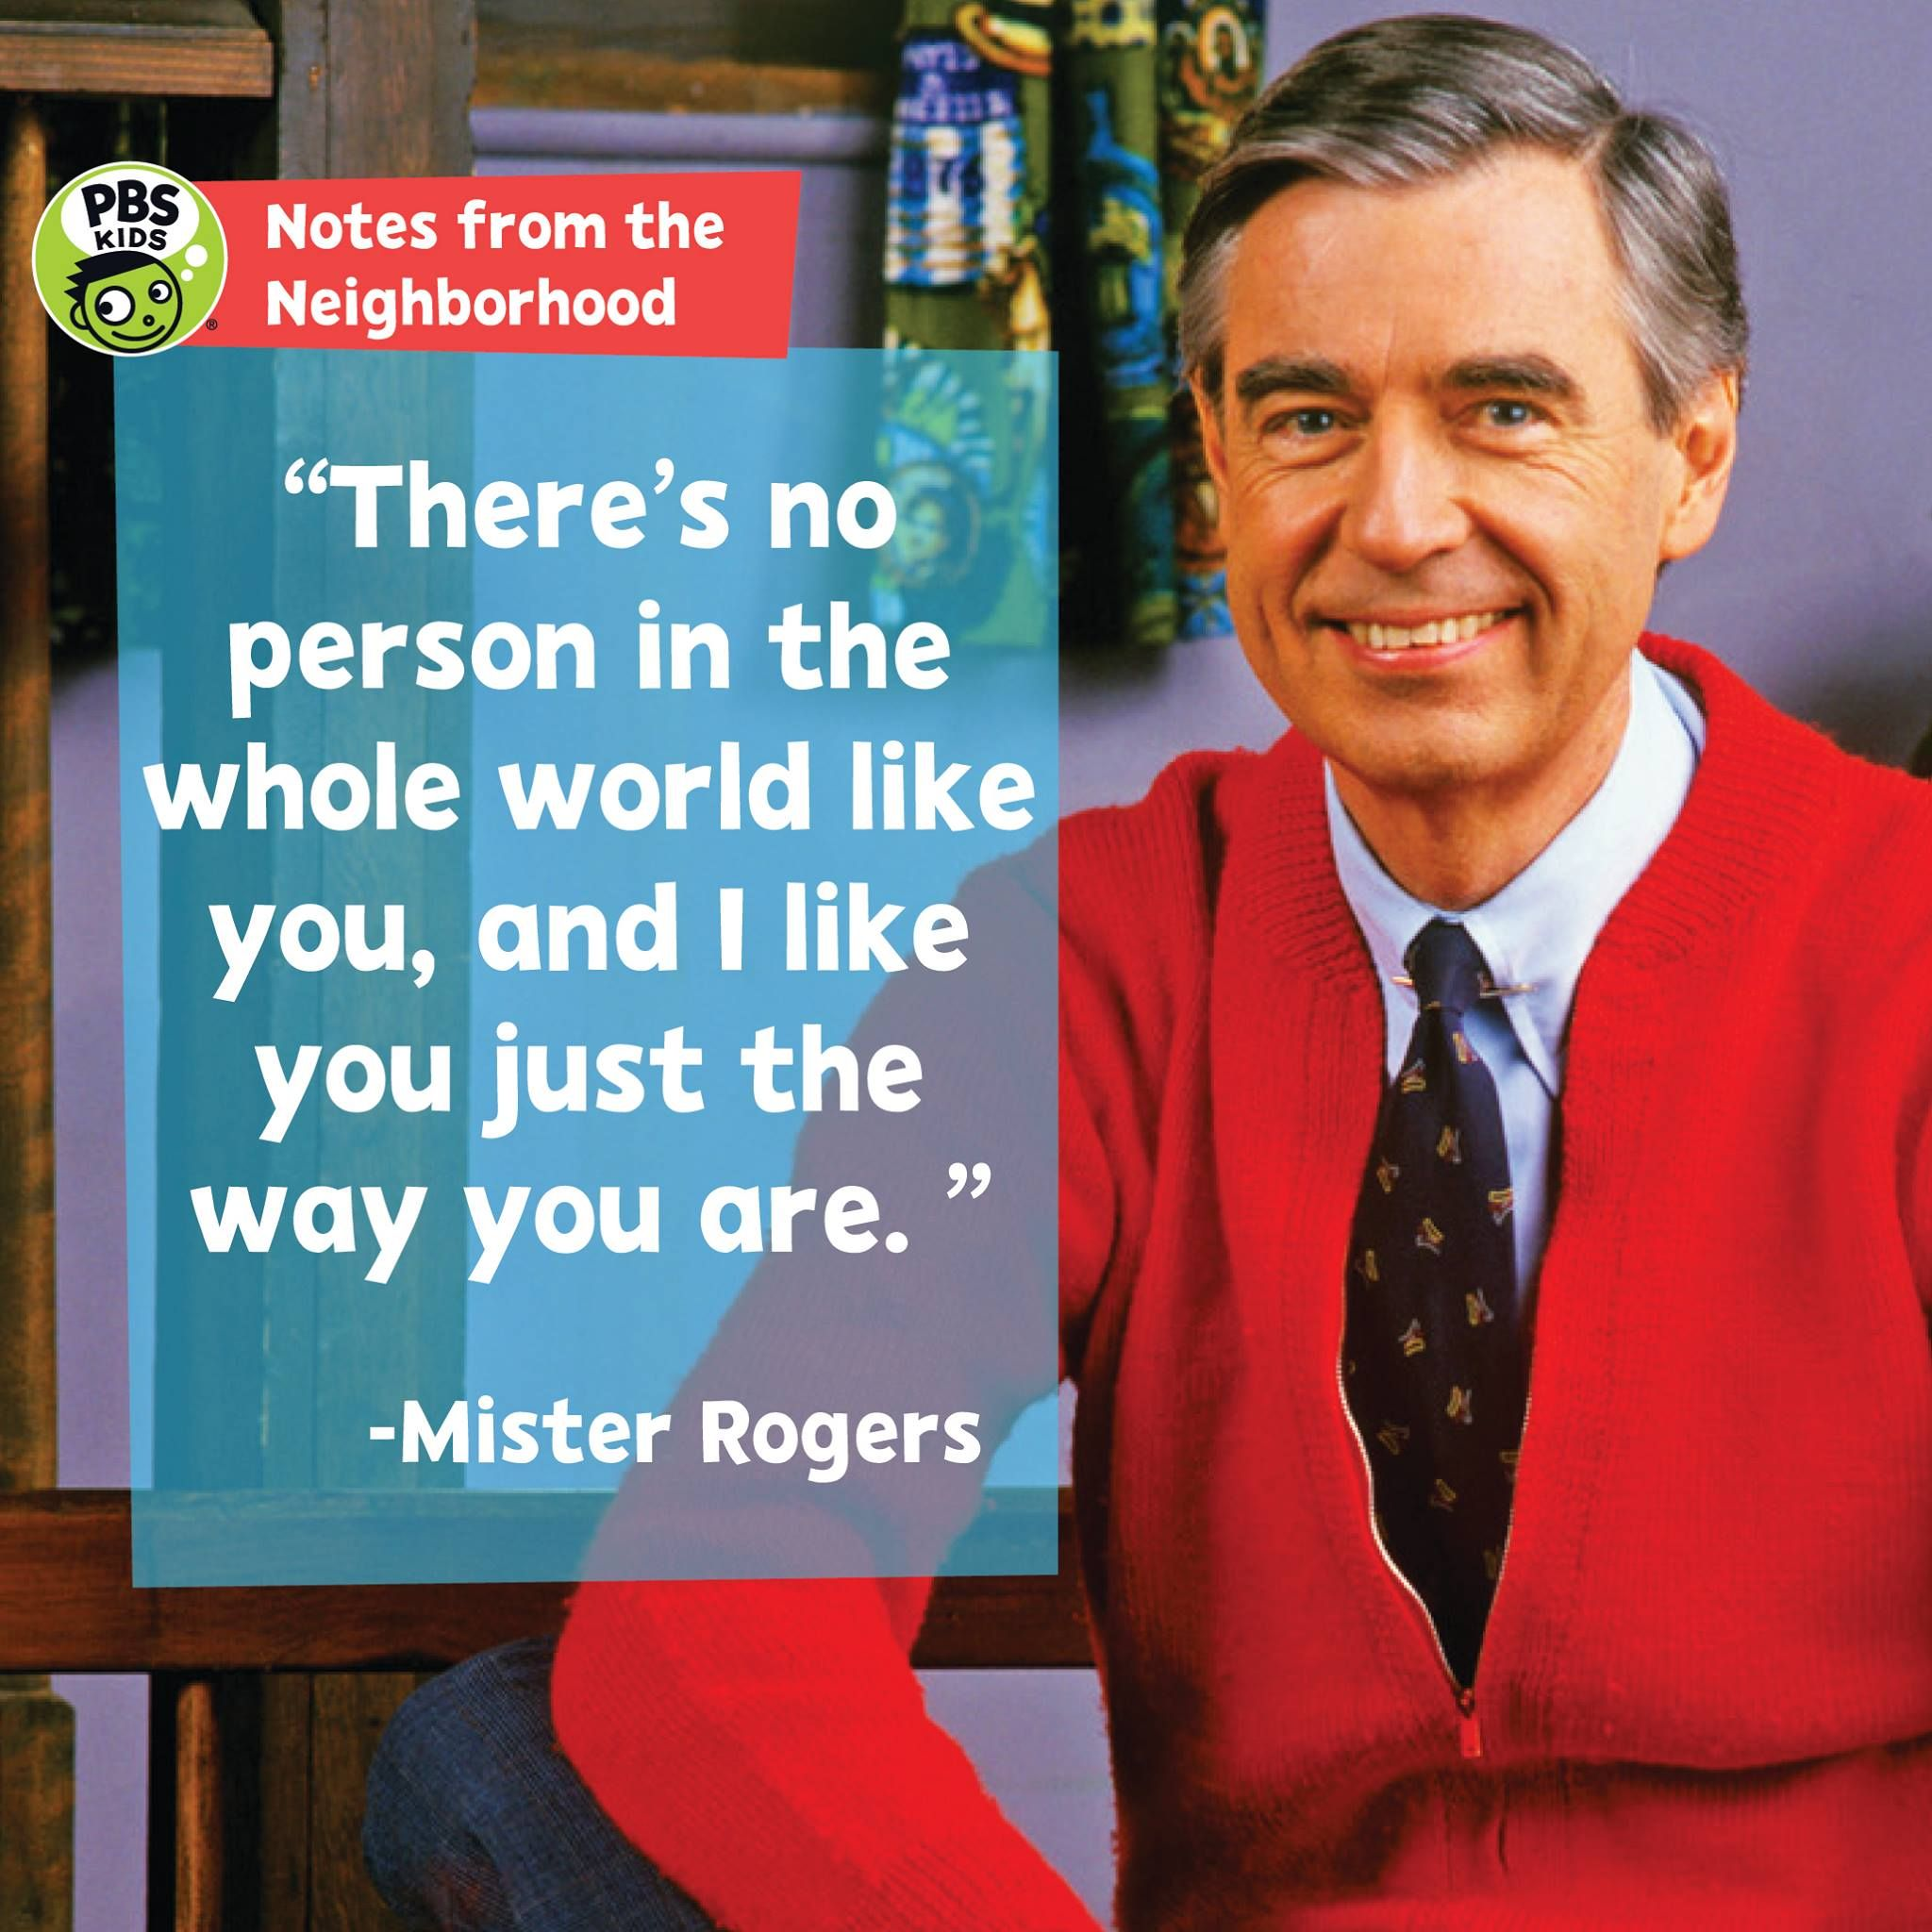 I Like You Just The Way You Are Mr Rogers Mr Rogers Quote Mr Rogers Mister Rogers Neighborhood